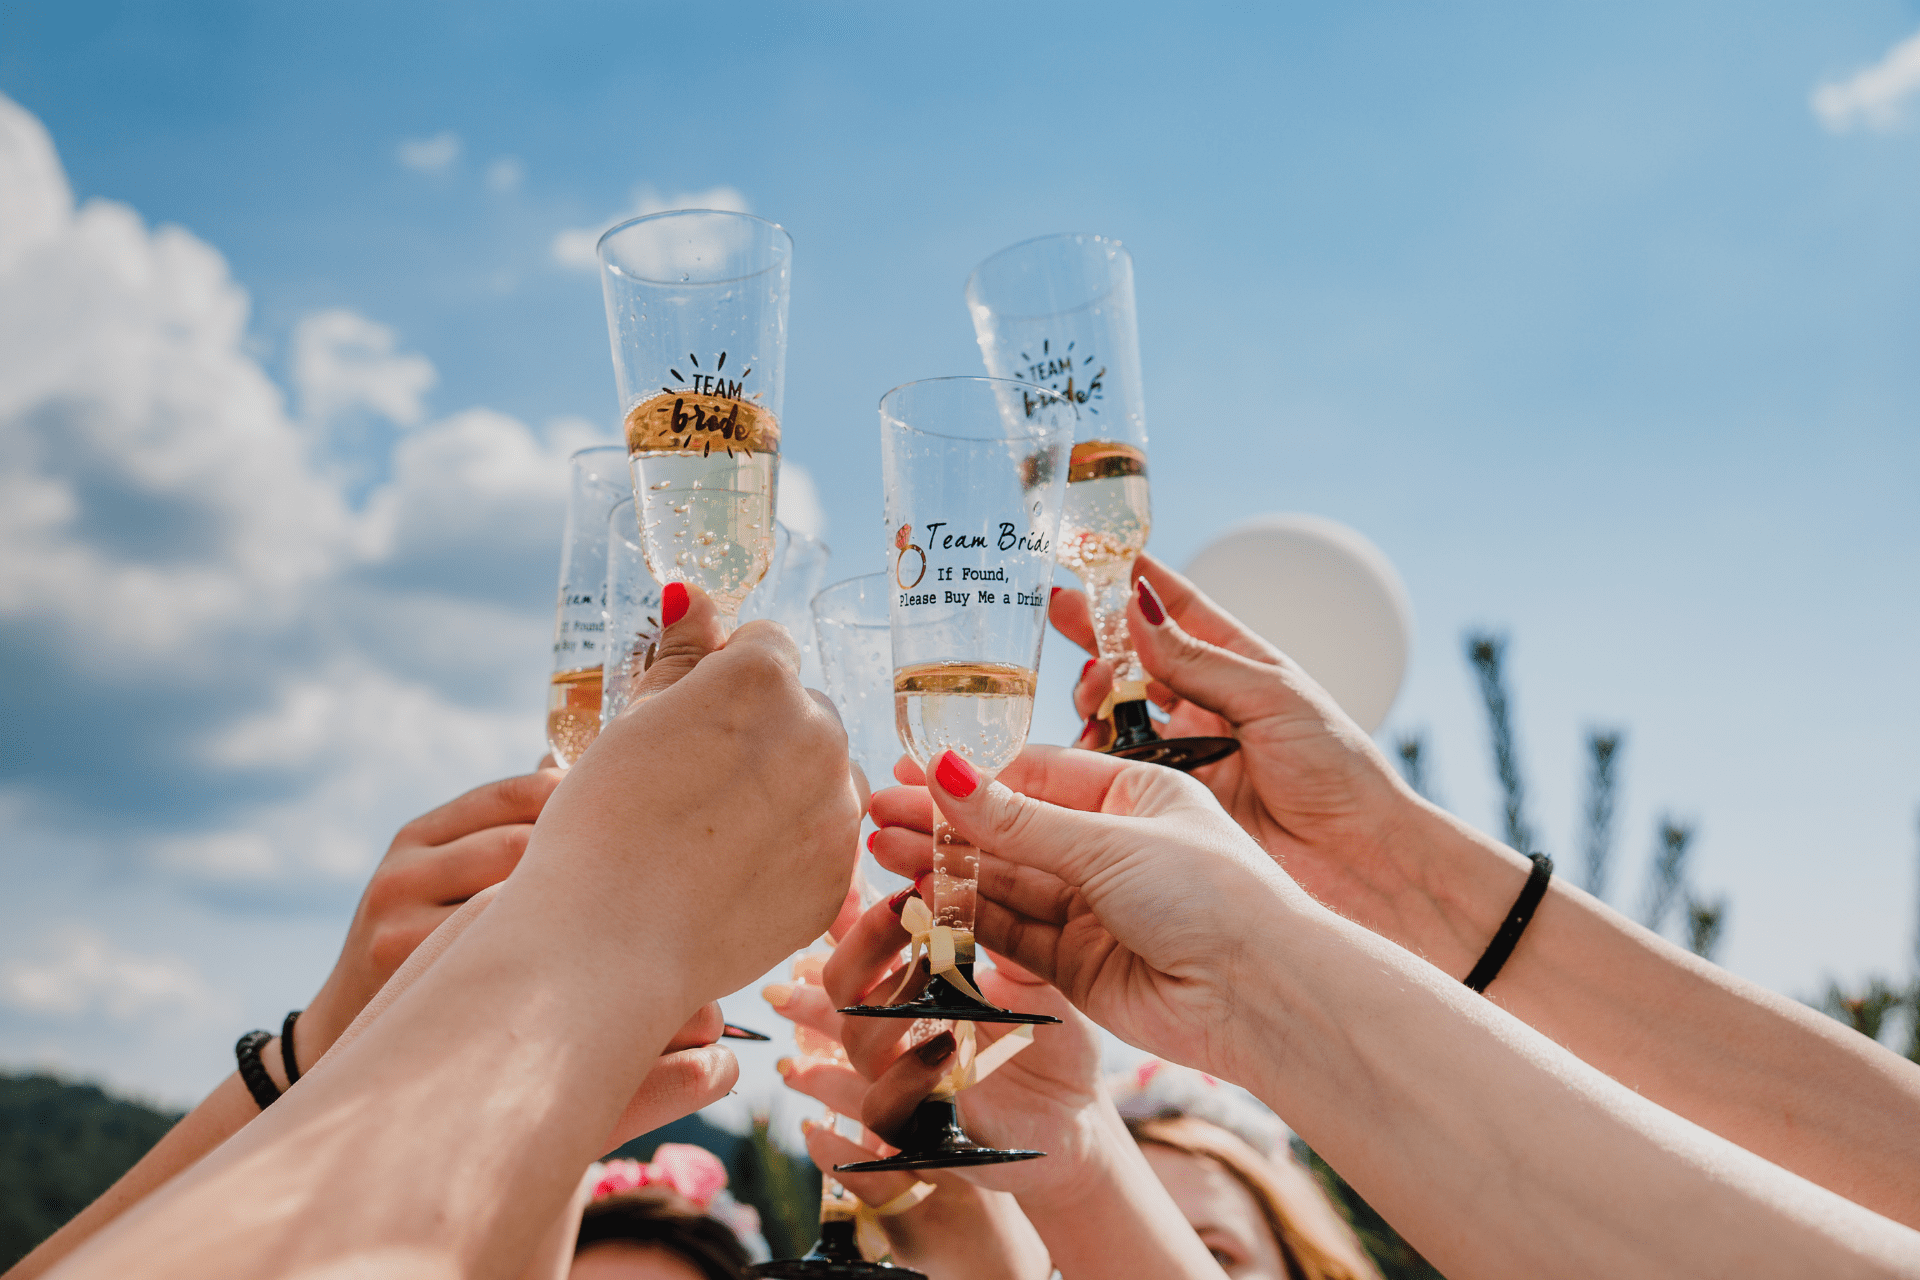 Bridesmaids cheers champagne flutes at a bachelorette party